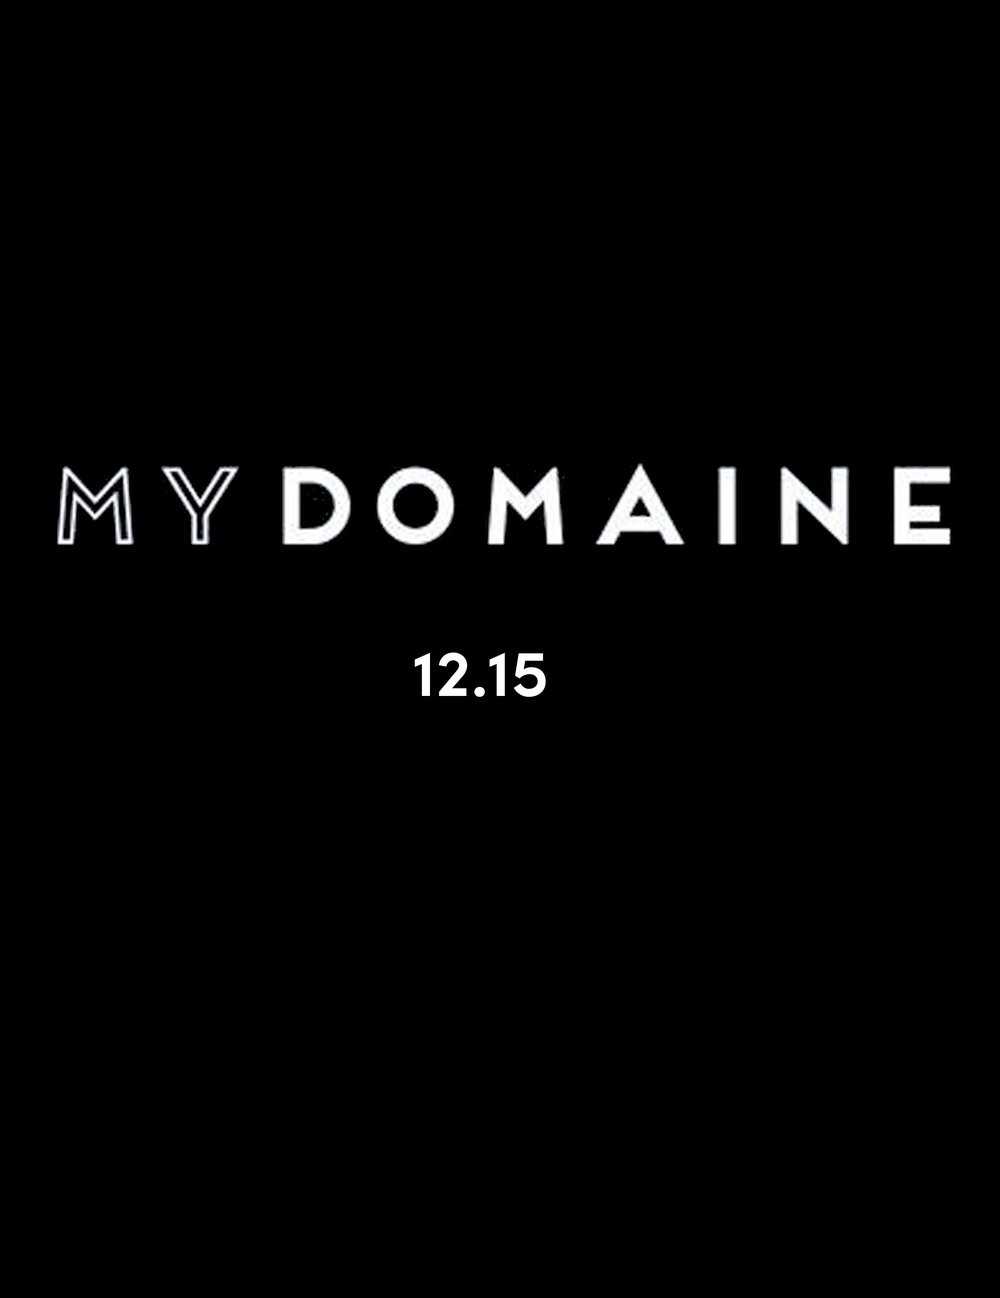 MyDomiane-Cover-Black-12.15.jpg